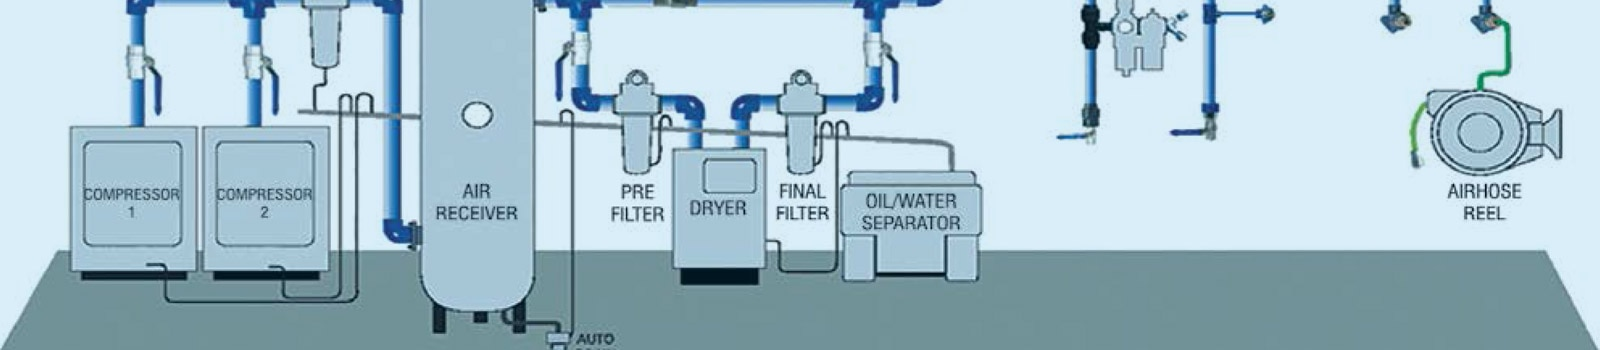 Compressed Air & Cooling Systems